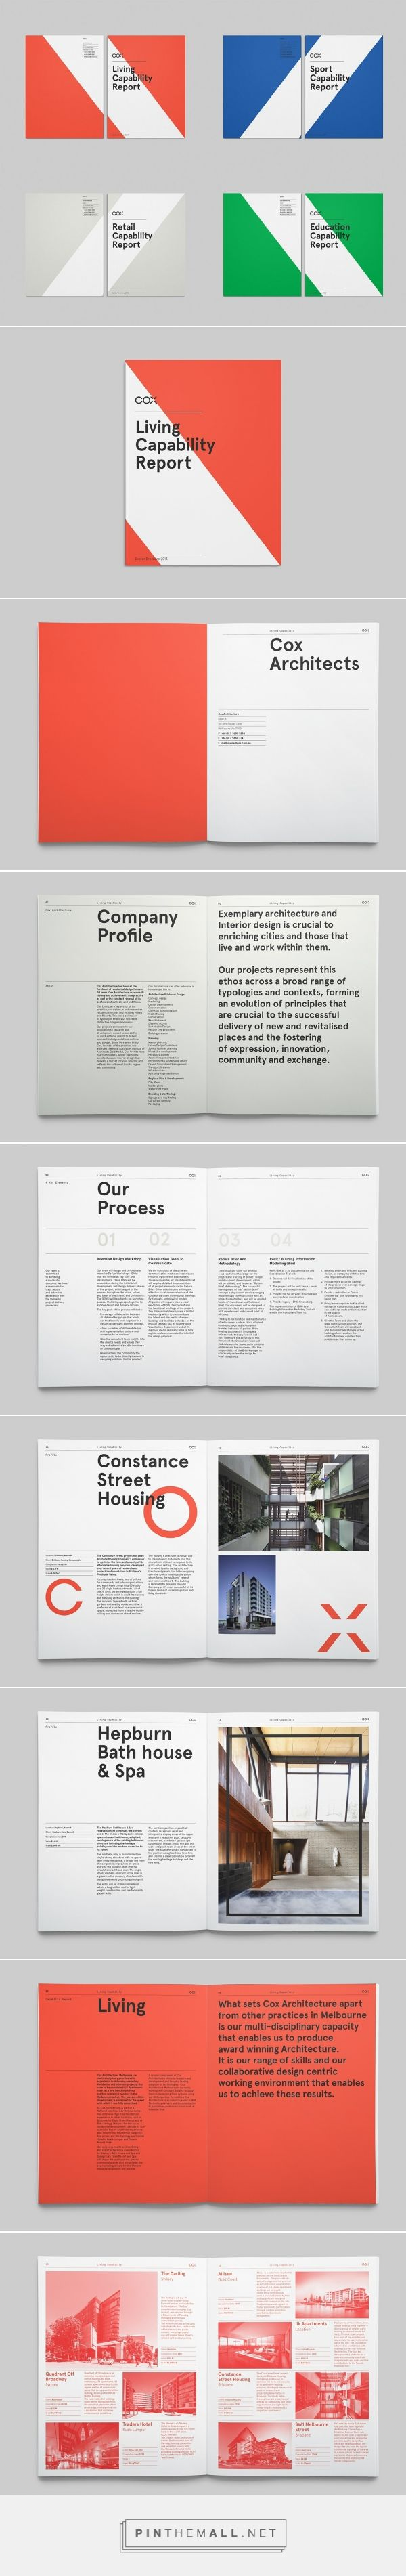 Use of white space, variety of text size - Cox Architecture (Simon Harris)